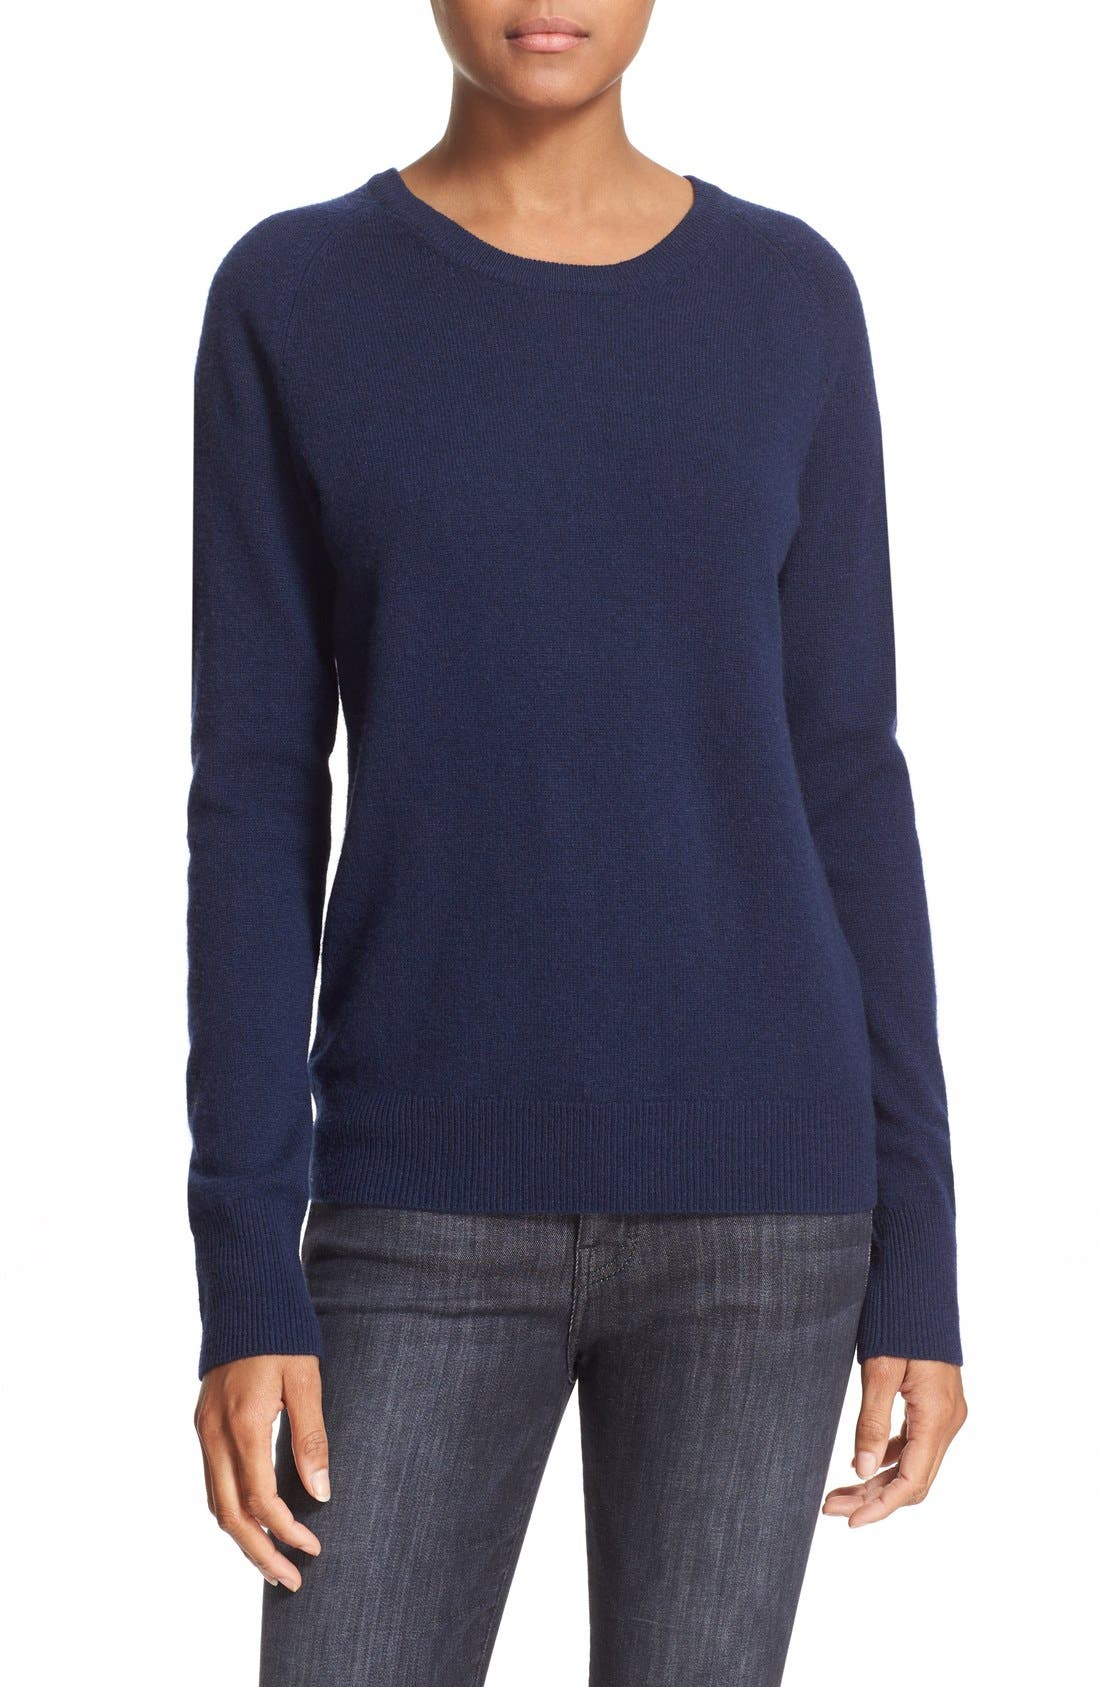 Alternate Image 1 Selected - Equipment 'Sloane' Crewneck Cashmere Sweater